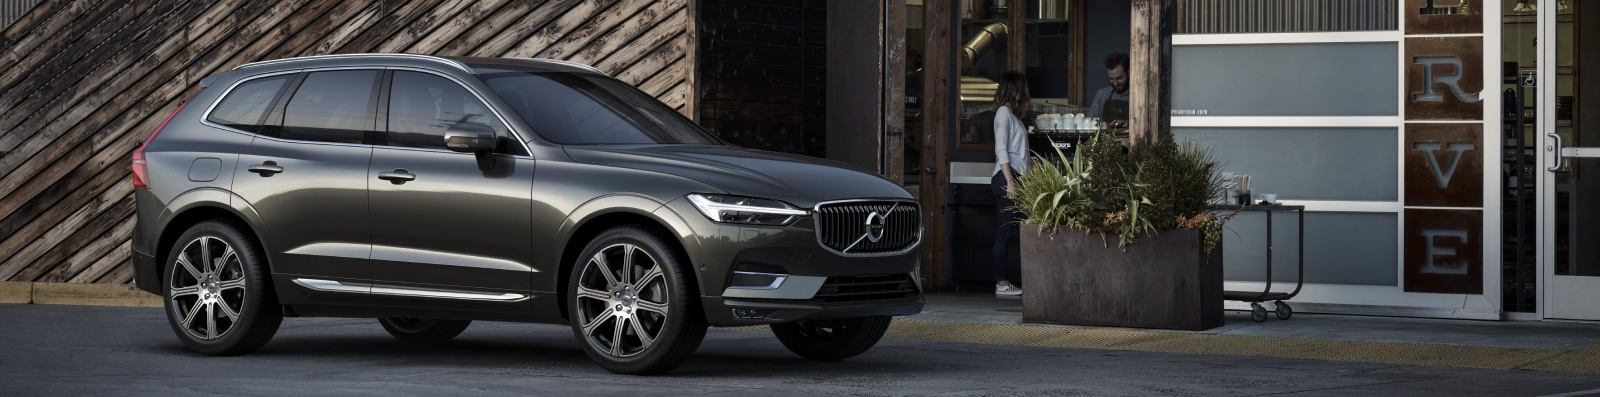 New Volvo XC60 outside a modern shop